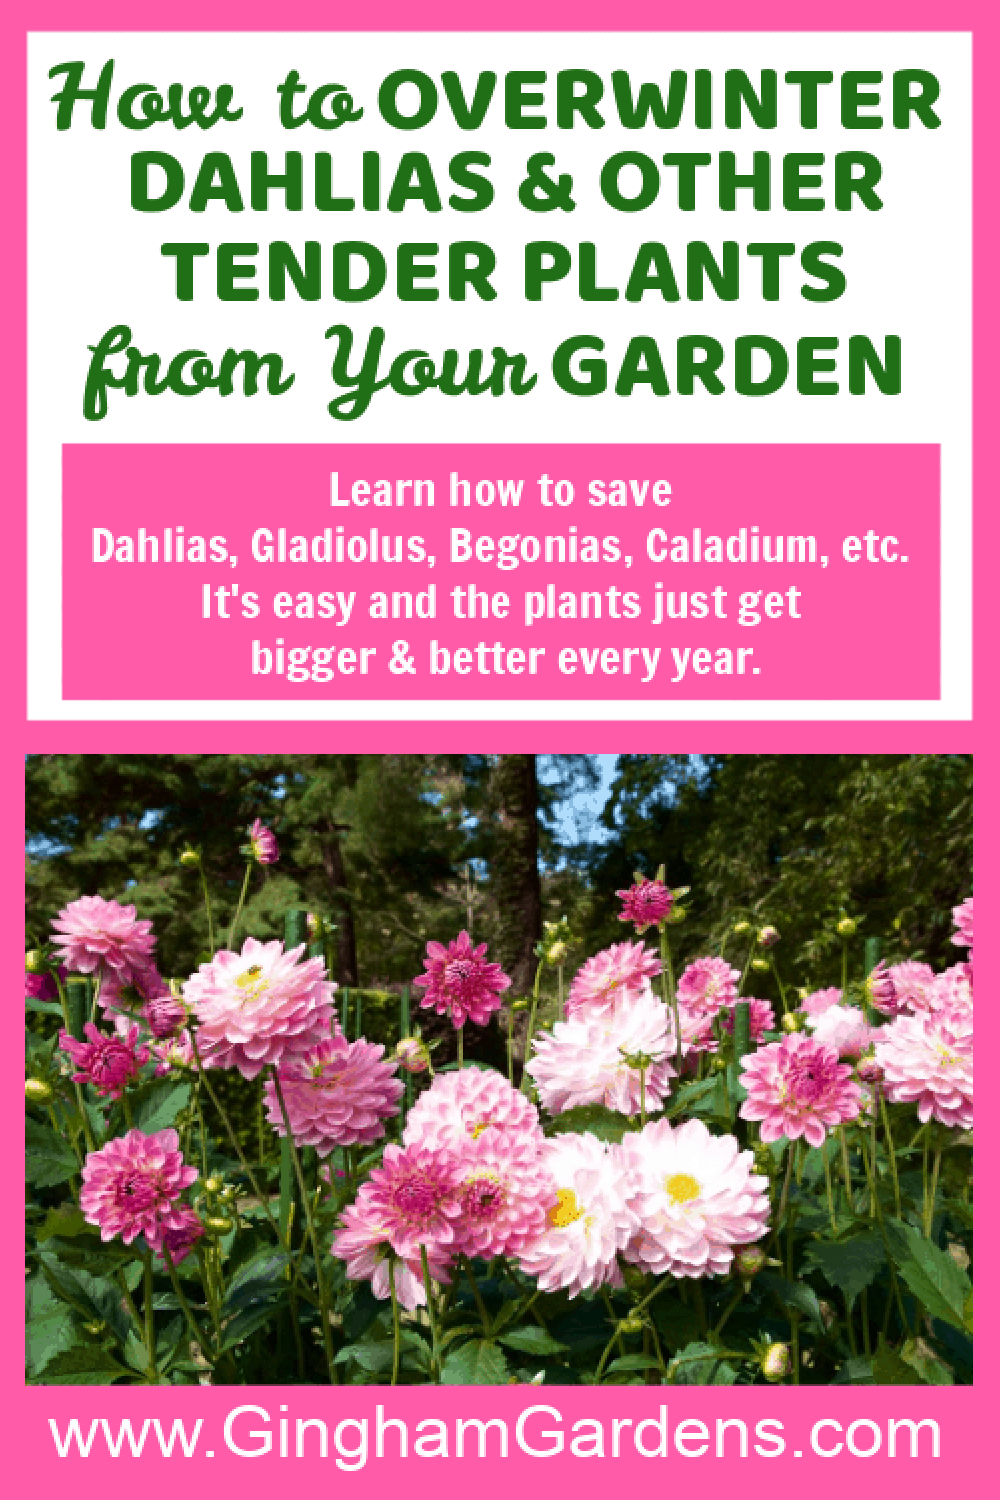 Image of Dahlia Flowers - with text overlay - How to Overwinter Dahlias and other tender plants